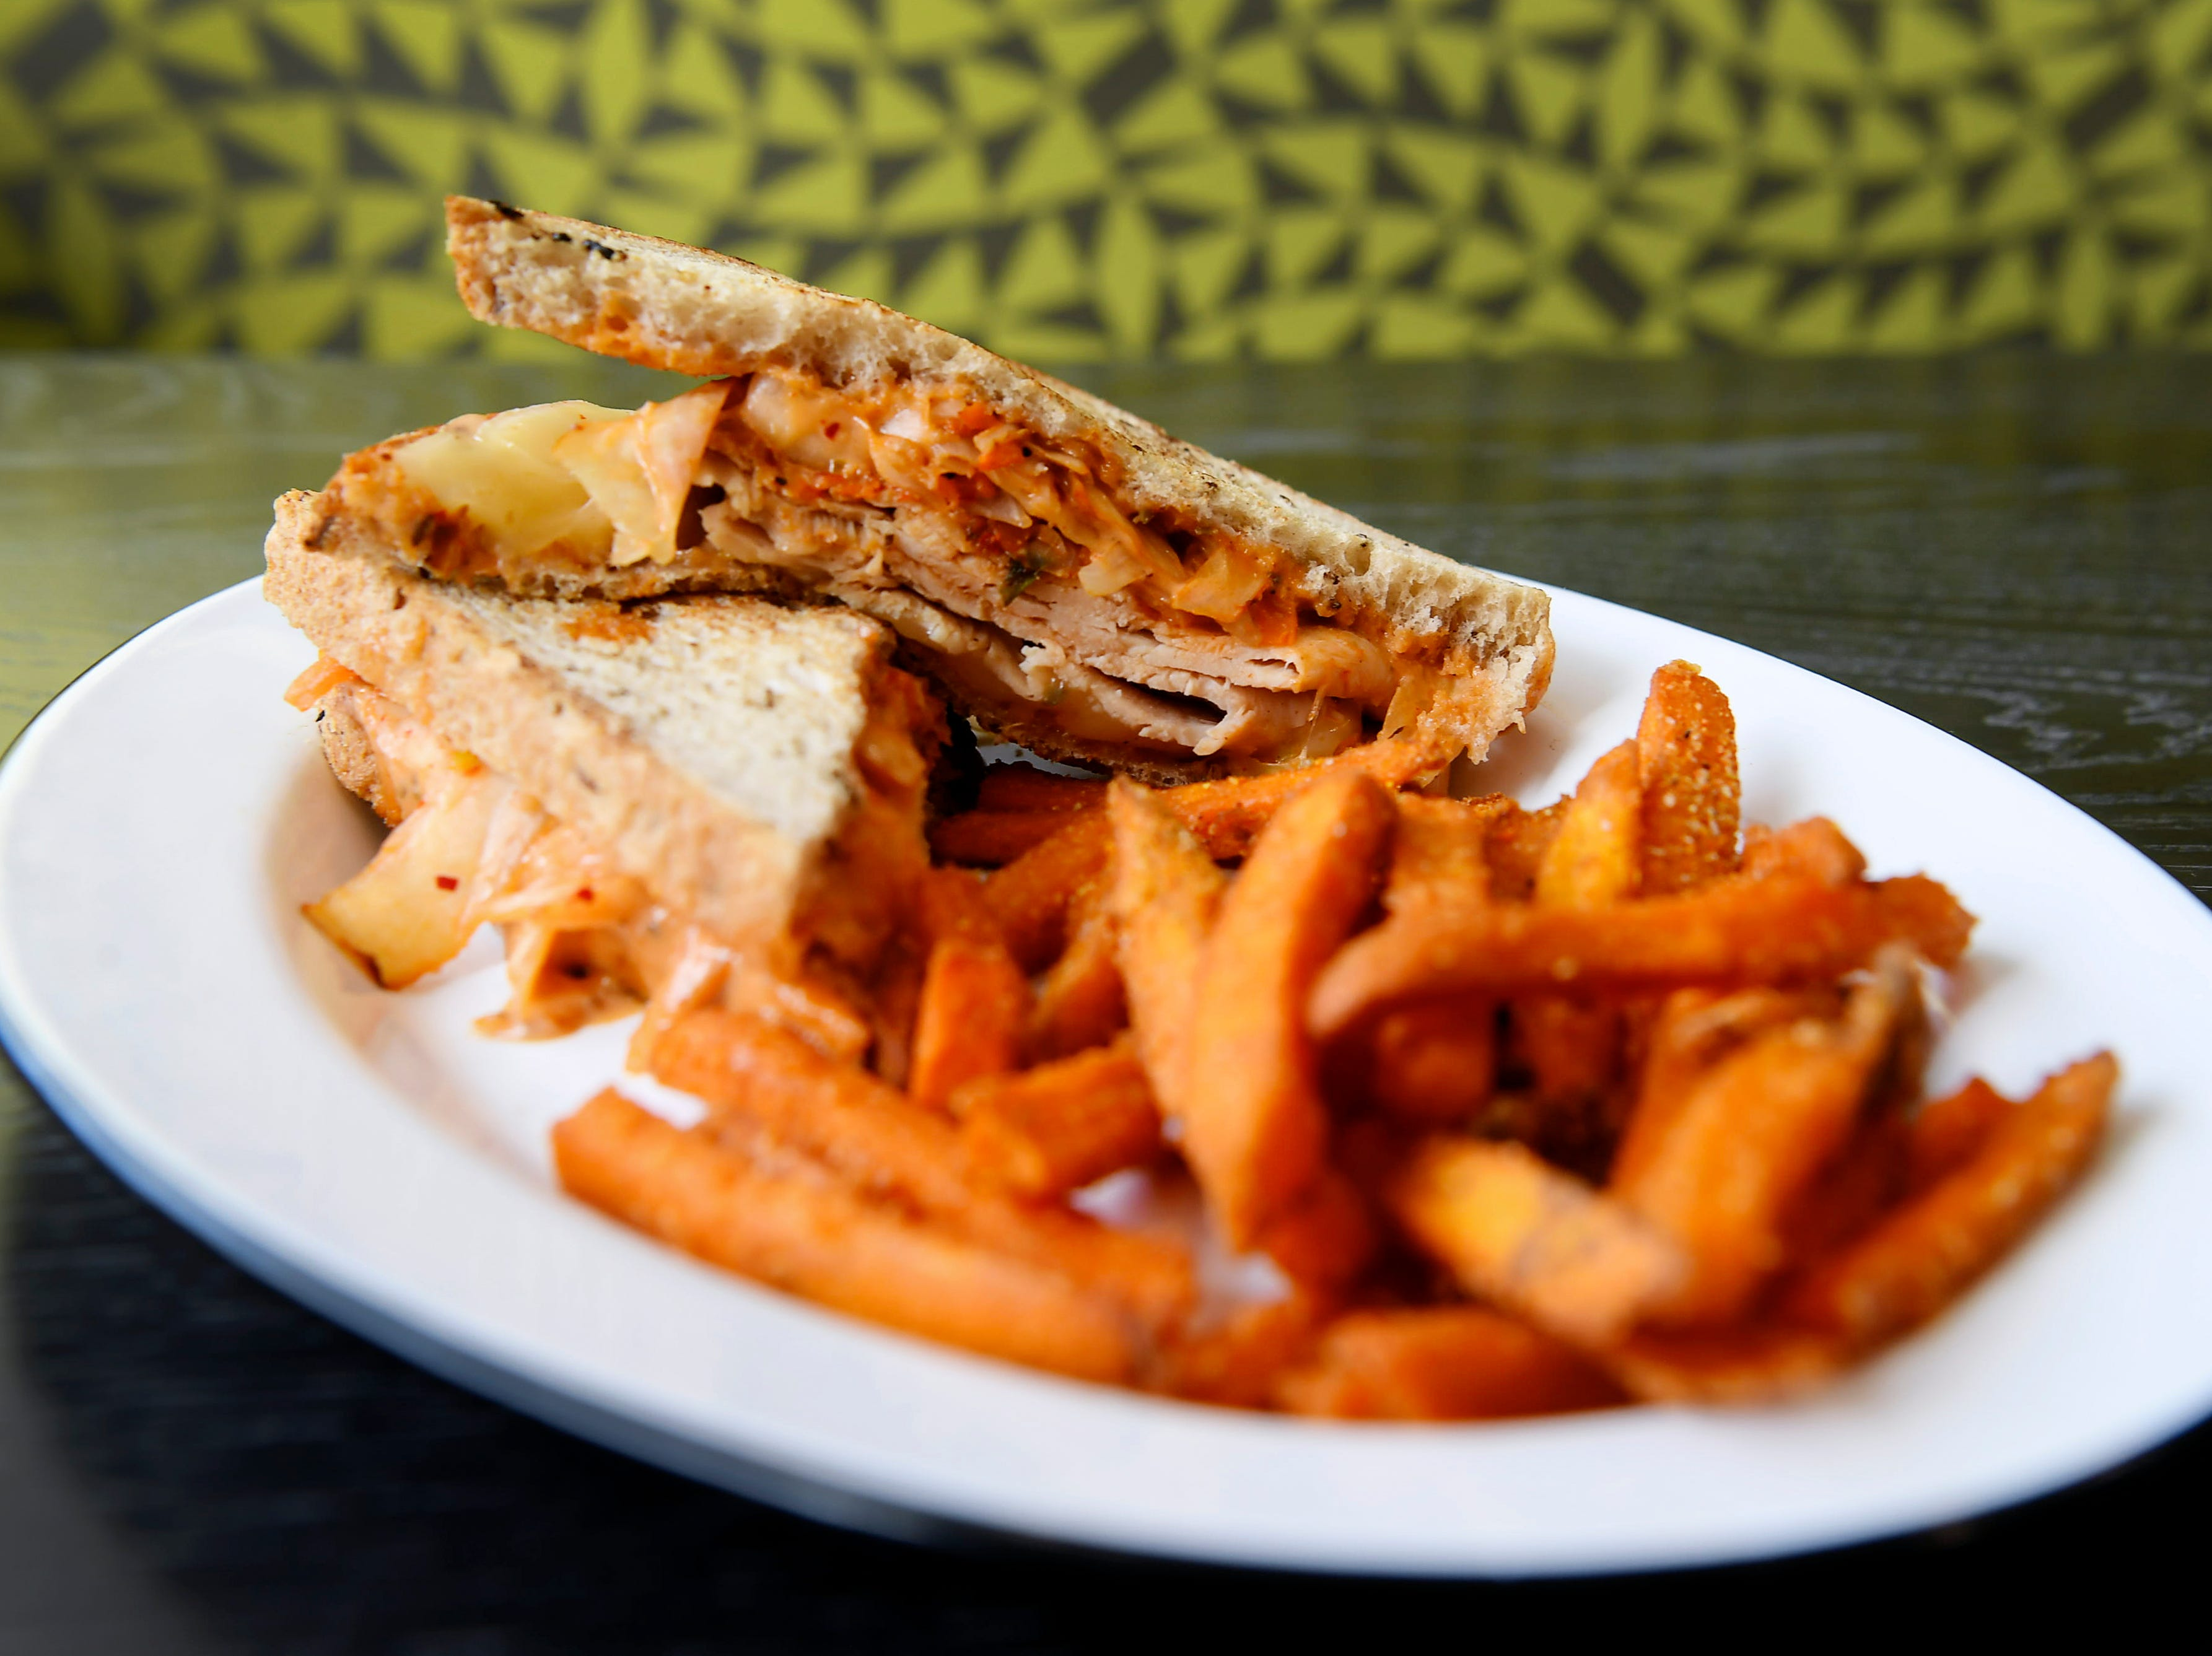 A turkey kimchi reuben with sweet potato fries at Green Sage's new Merrimon location in North Asheville Feb. 14, 2019.